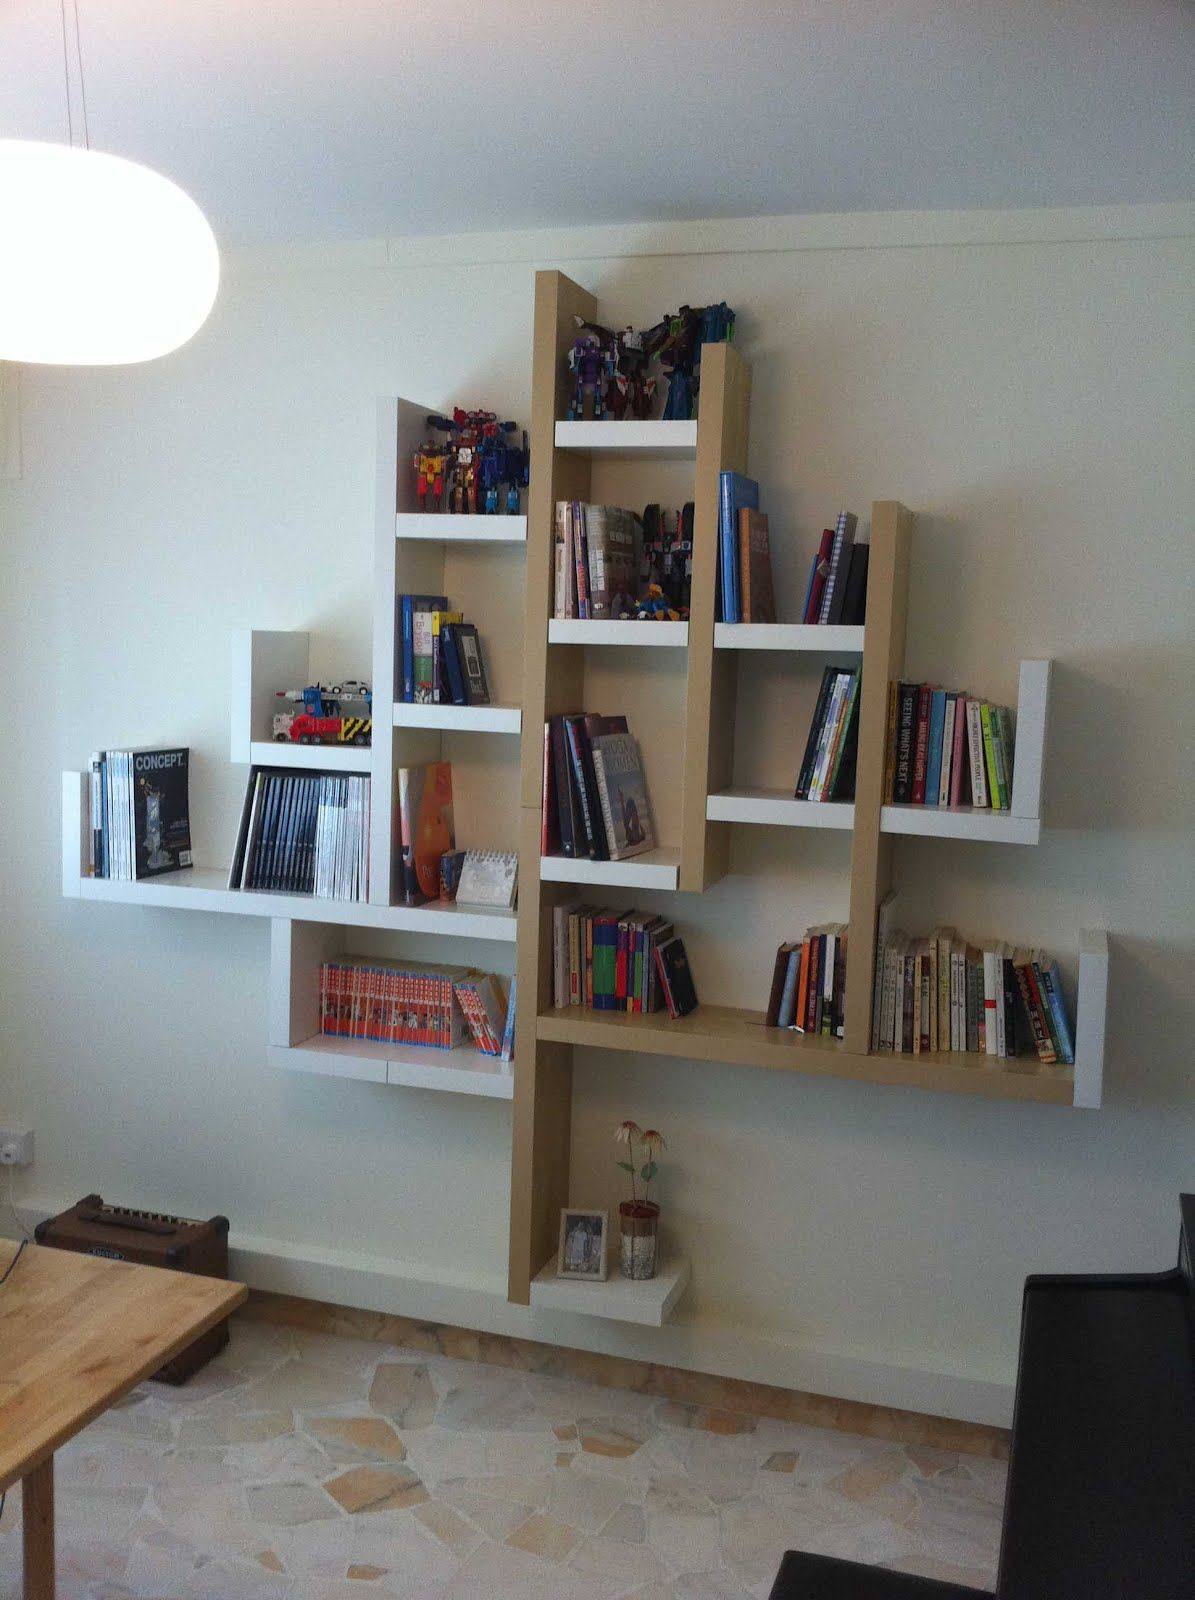 On Wall Bookshelf lack bookshelf - i'd love to have this in the playroom for books